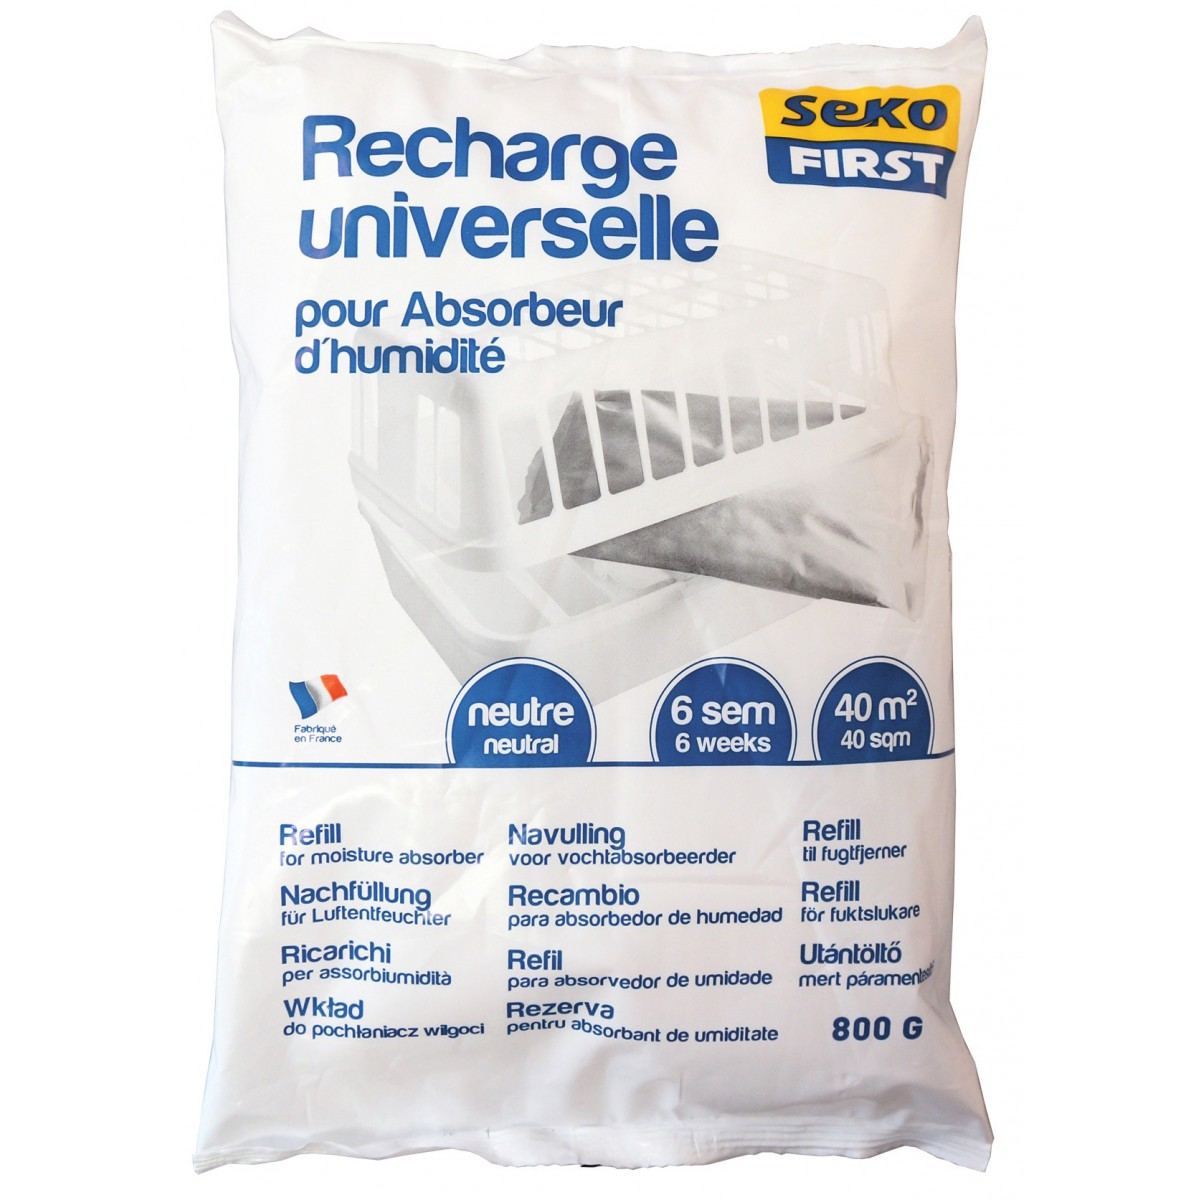 Recharge universelle Large Seko first